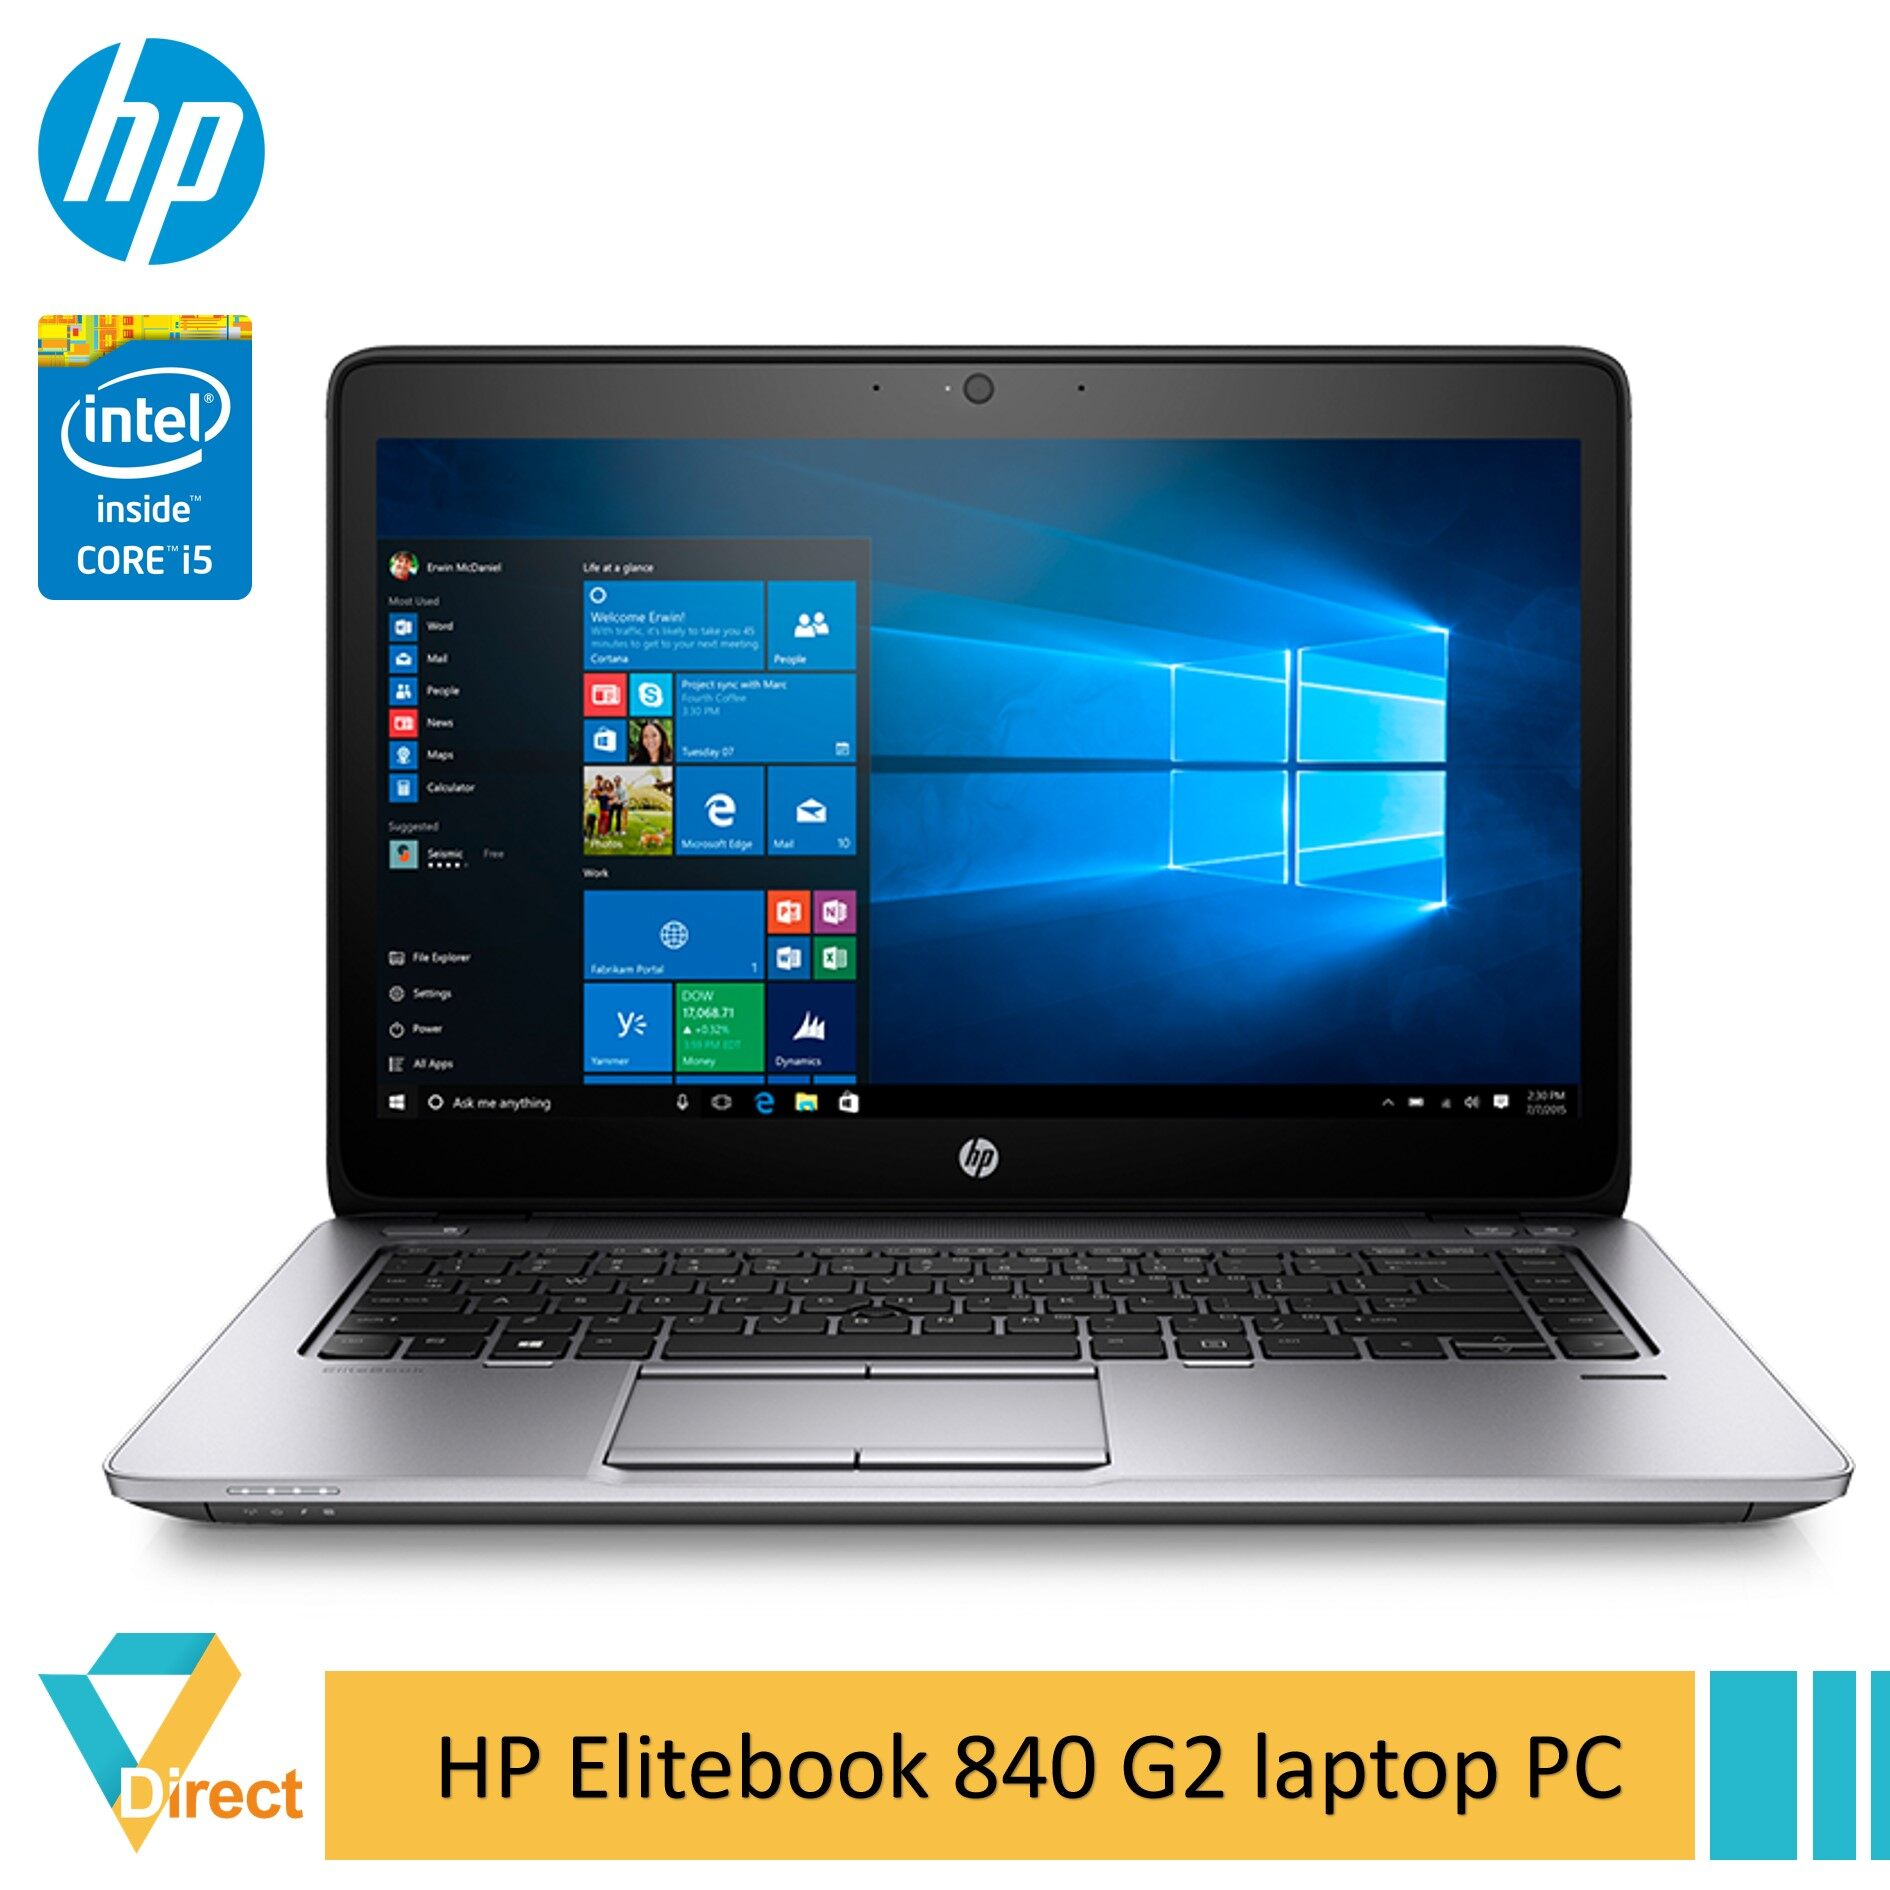 1.55kg 5th gen Core i5 16GB RAM NEW 480GB SSD HP Elitebook 840 G2 Ultrabook laptop PC -fully refurbished Malaysia